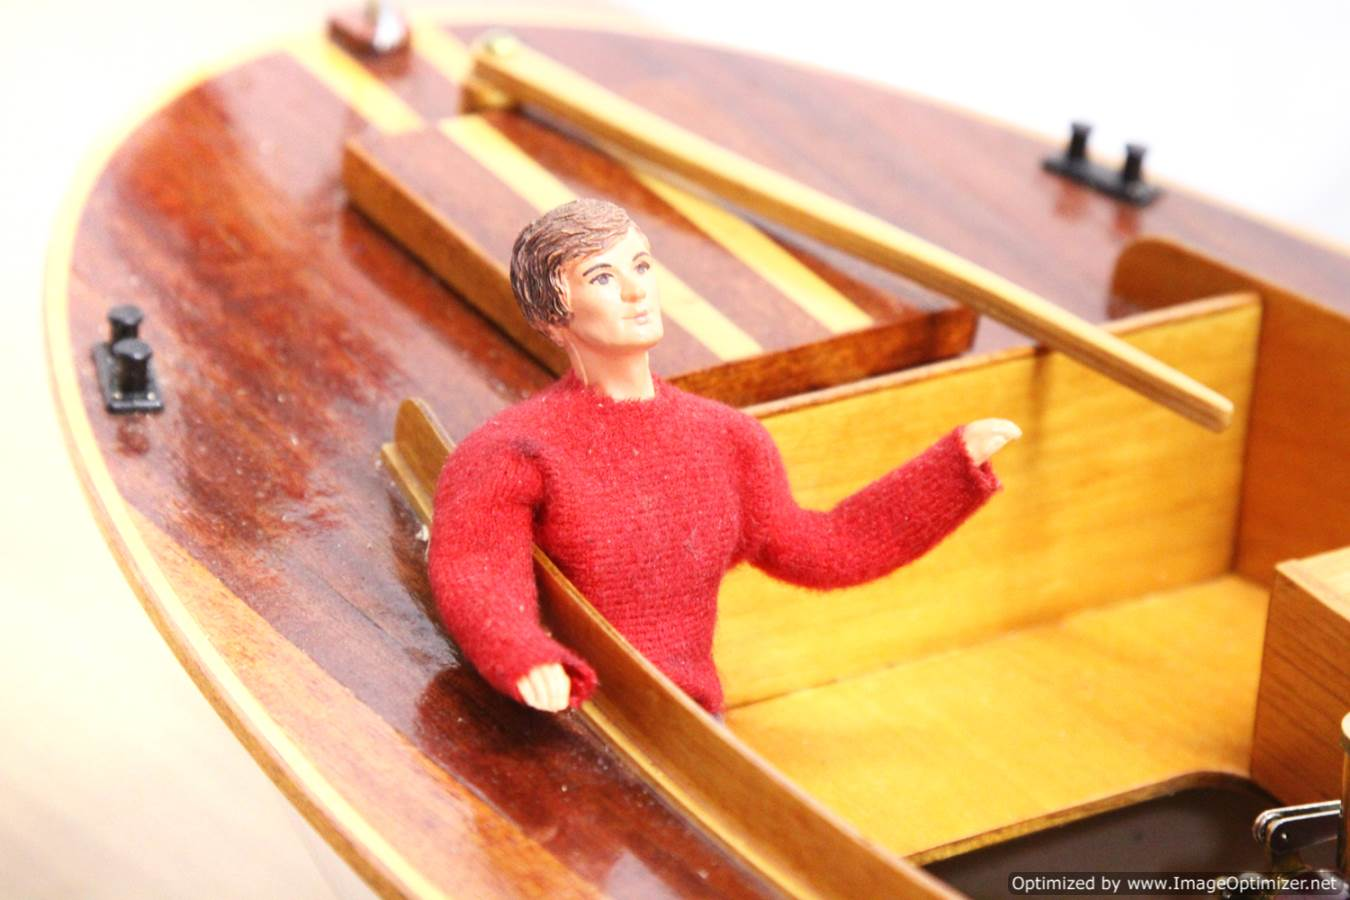 test anna-cheddar-steam-boat-live-steam-model-for-sale-20-optimized